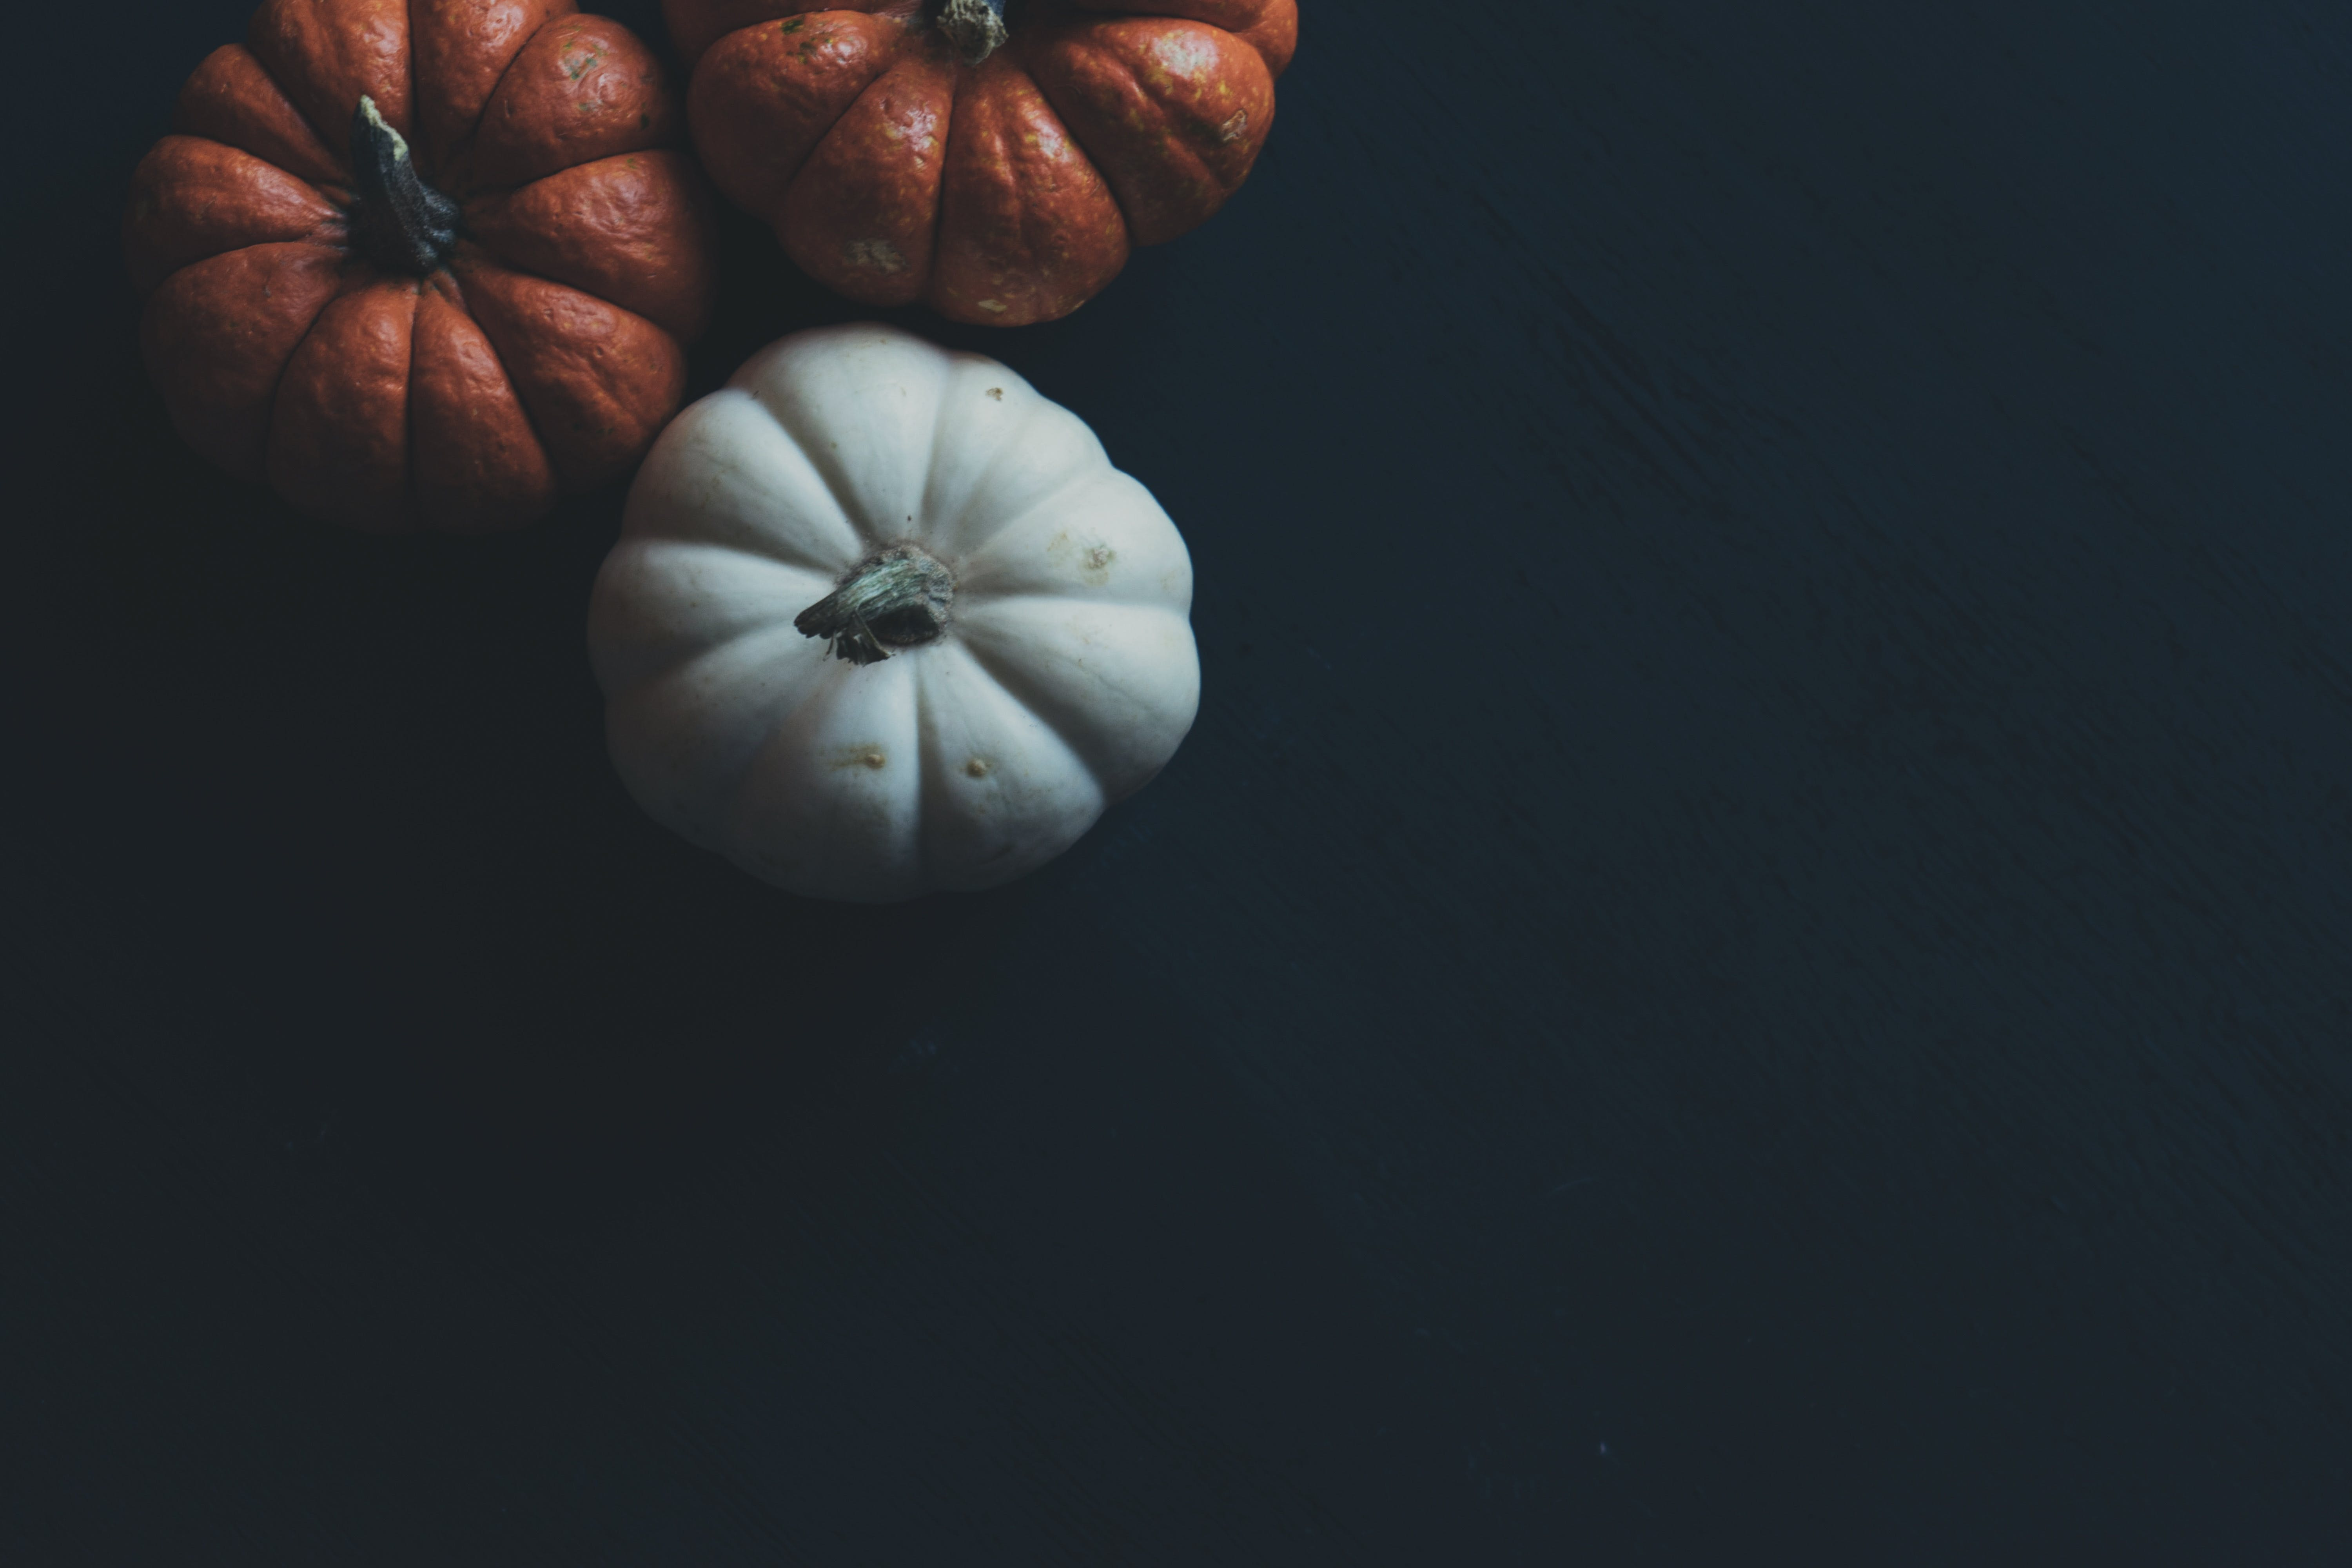 Three Orange and White Pumpkins